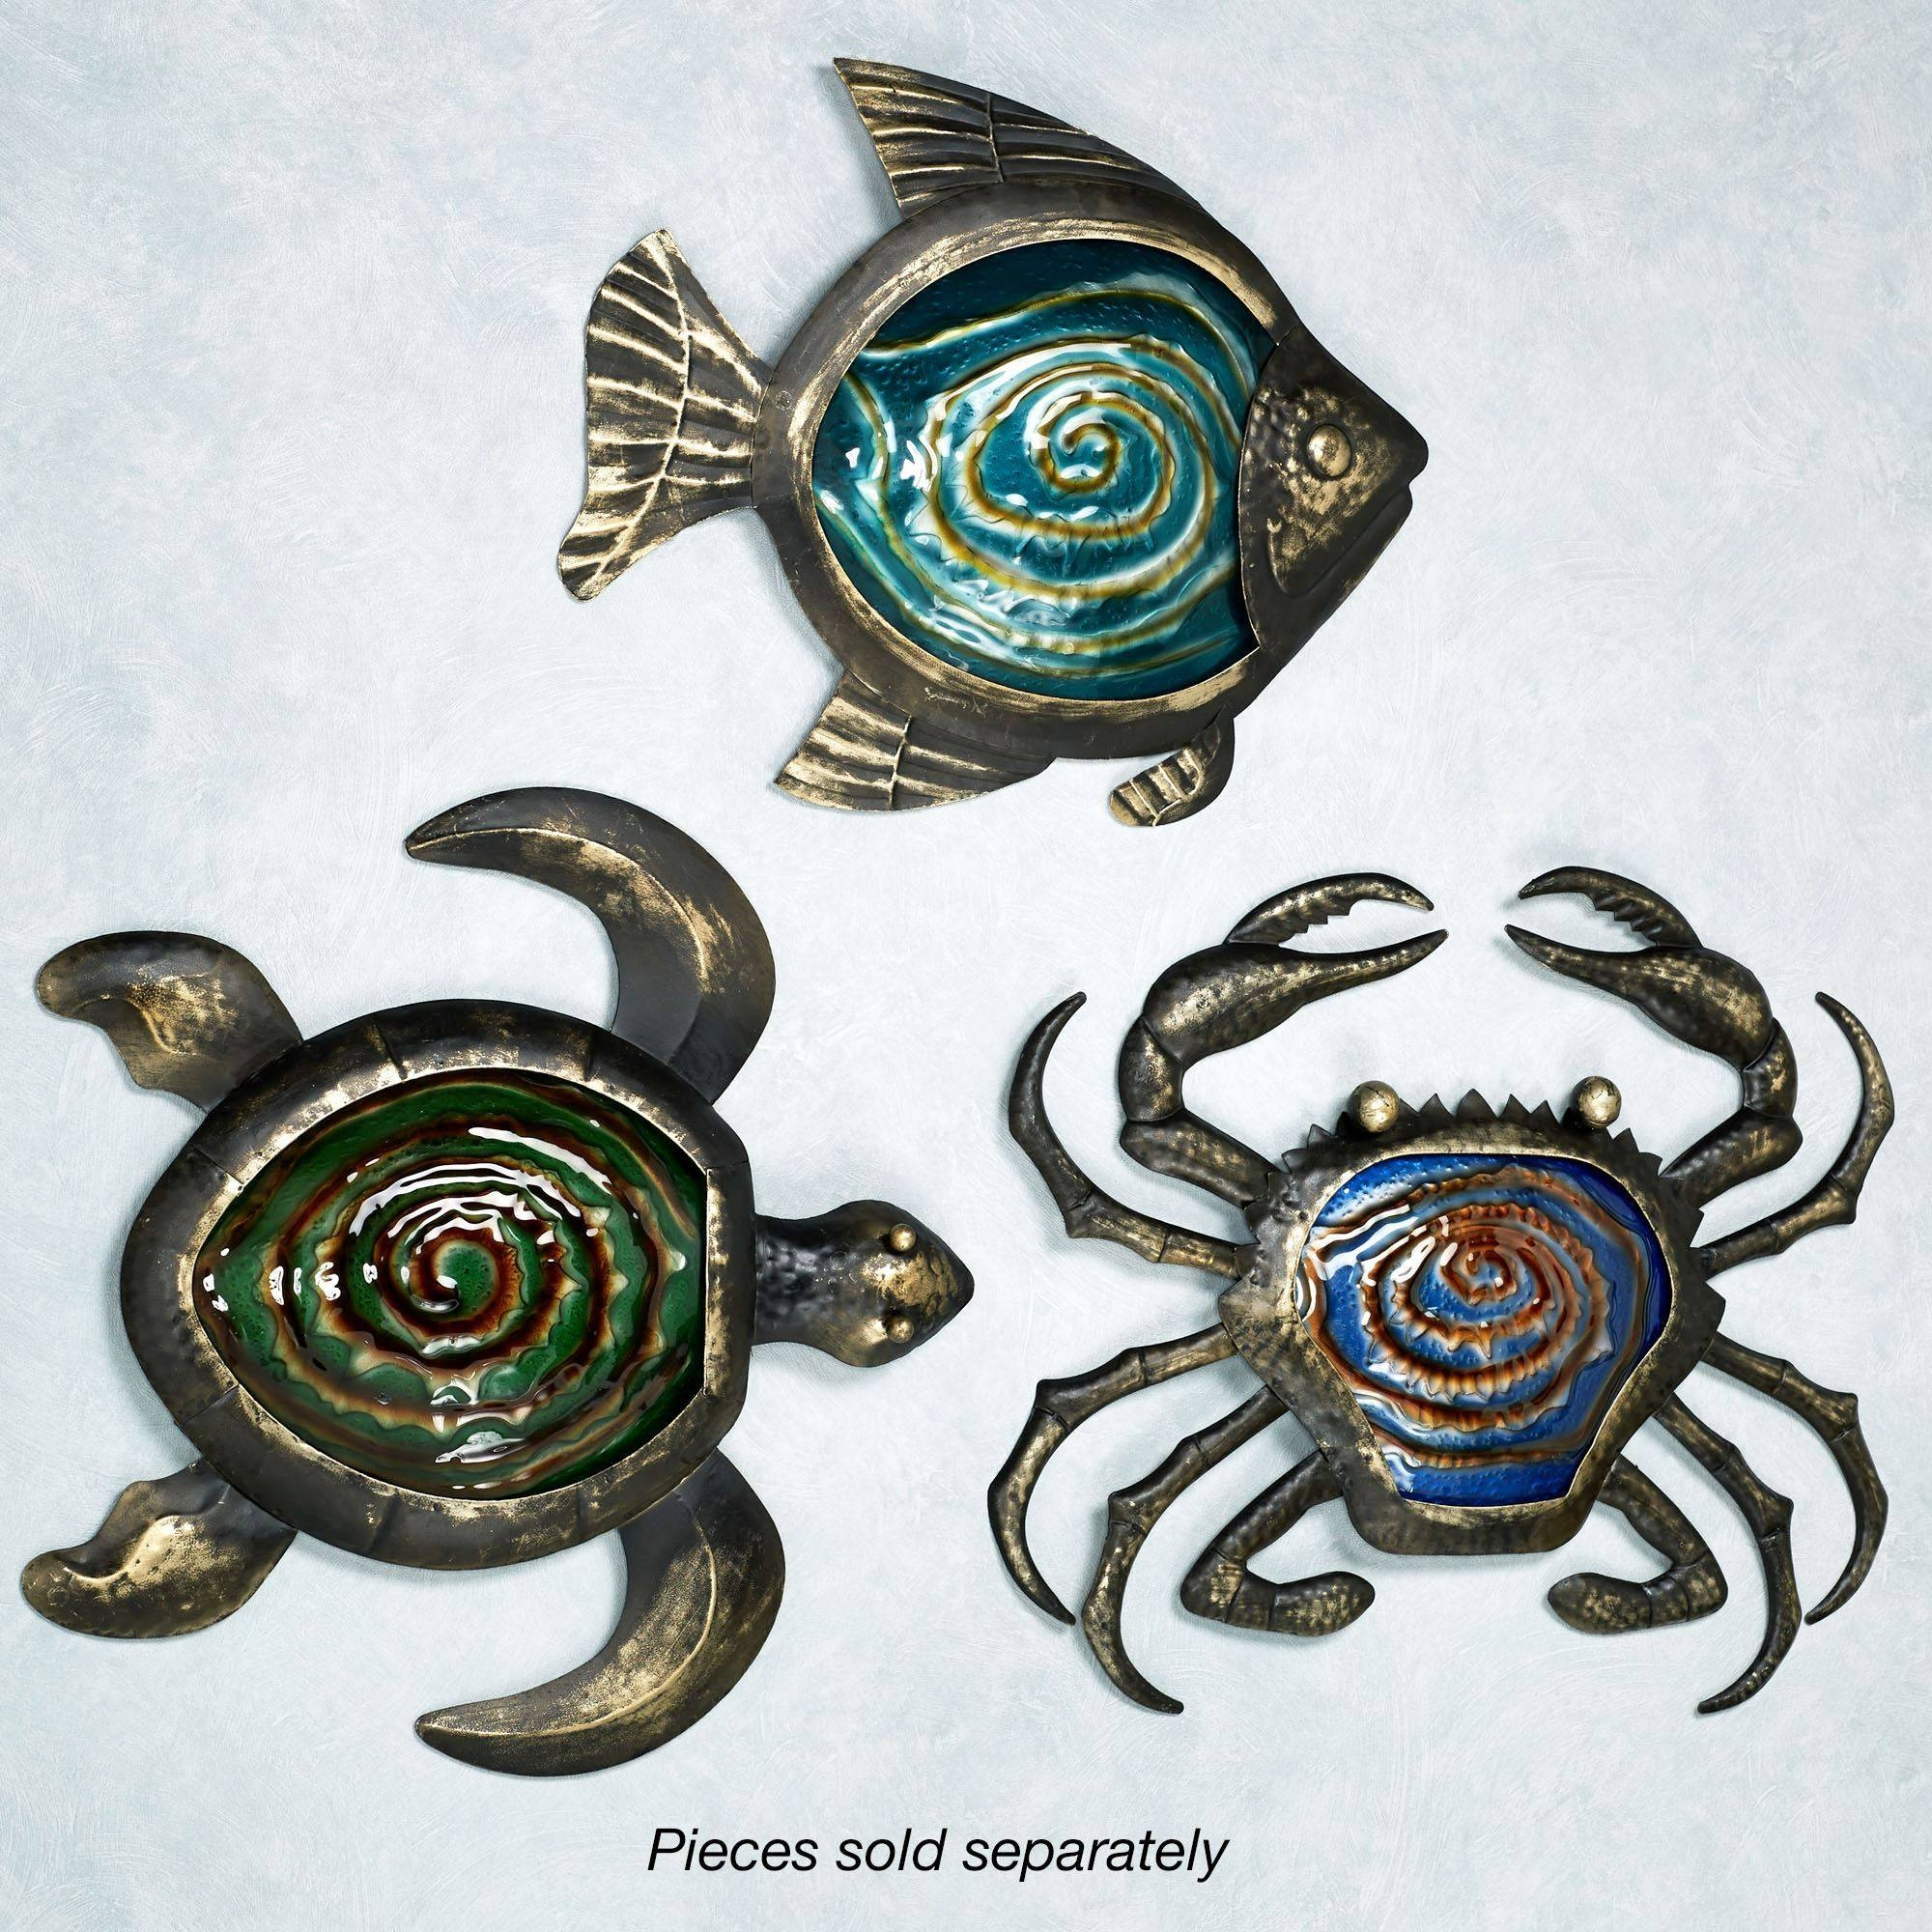 Sealife Indoor Outdoor Glass Metal Wall Art Throughout Most Recent Glass And Metal Wall Art (View 8 of 20)